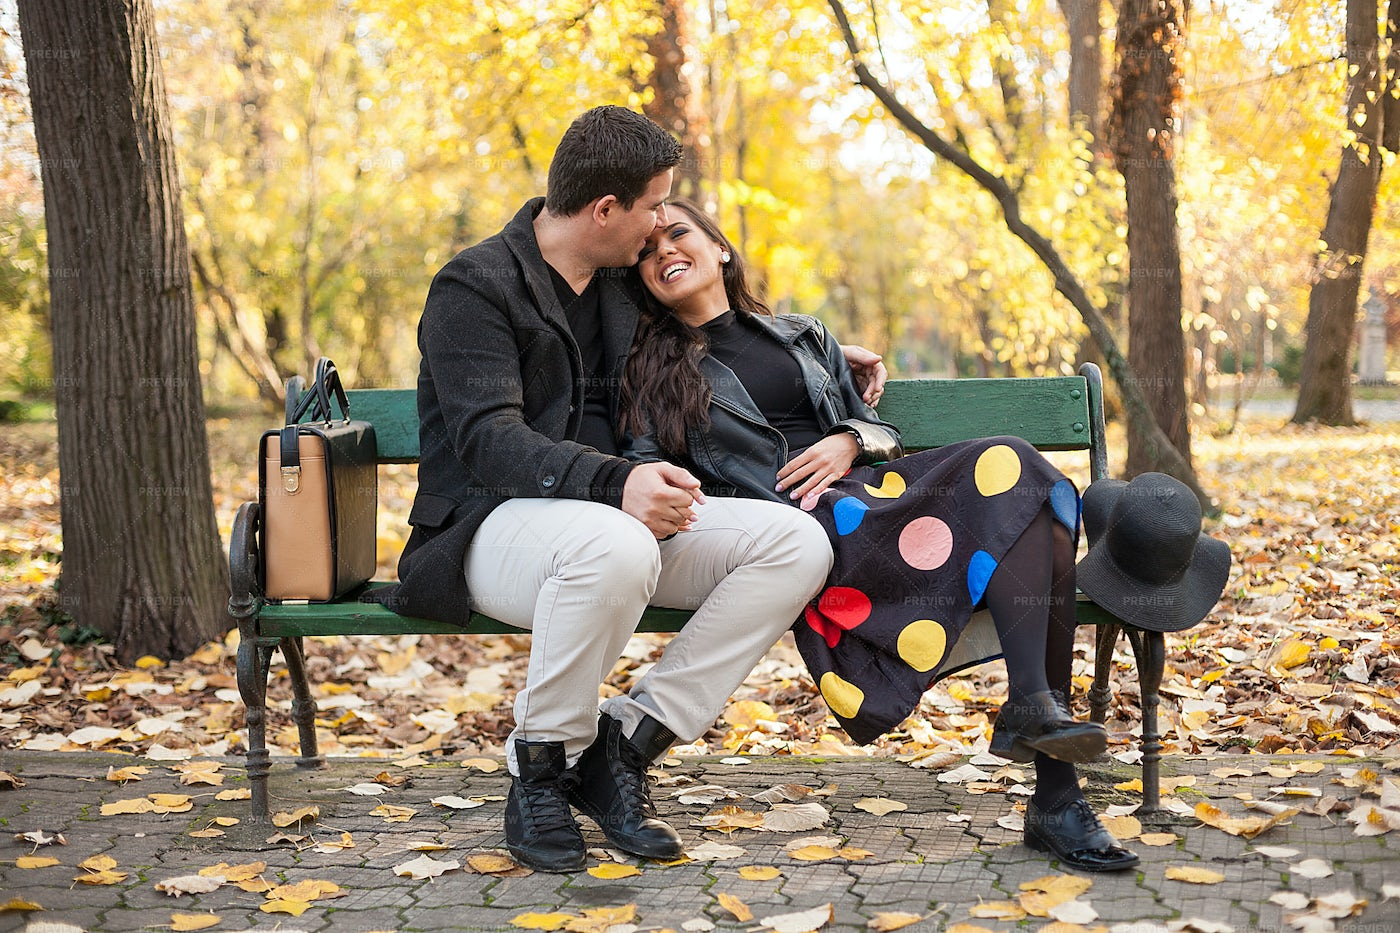 Couple In Love In The Park: Stock Photos